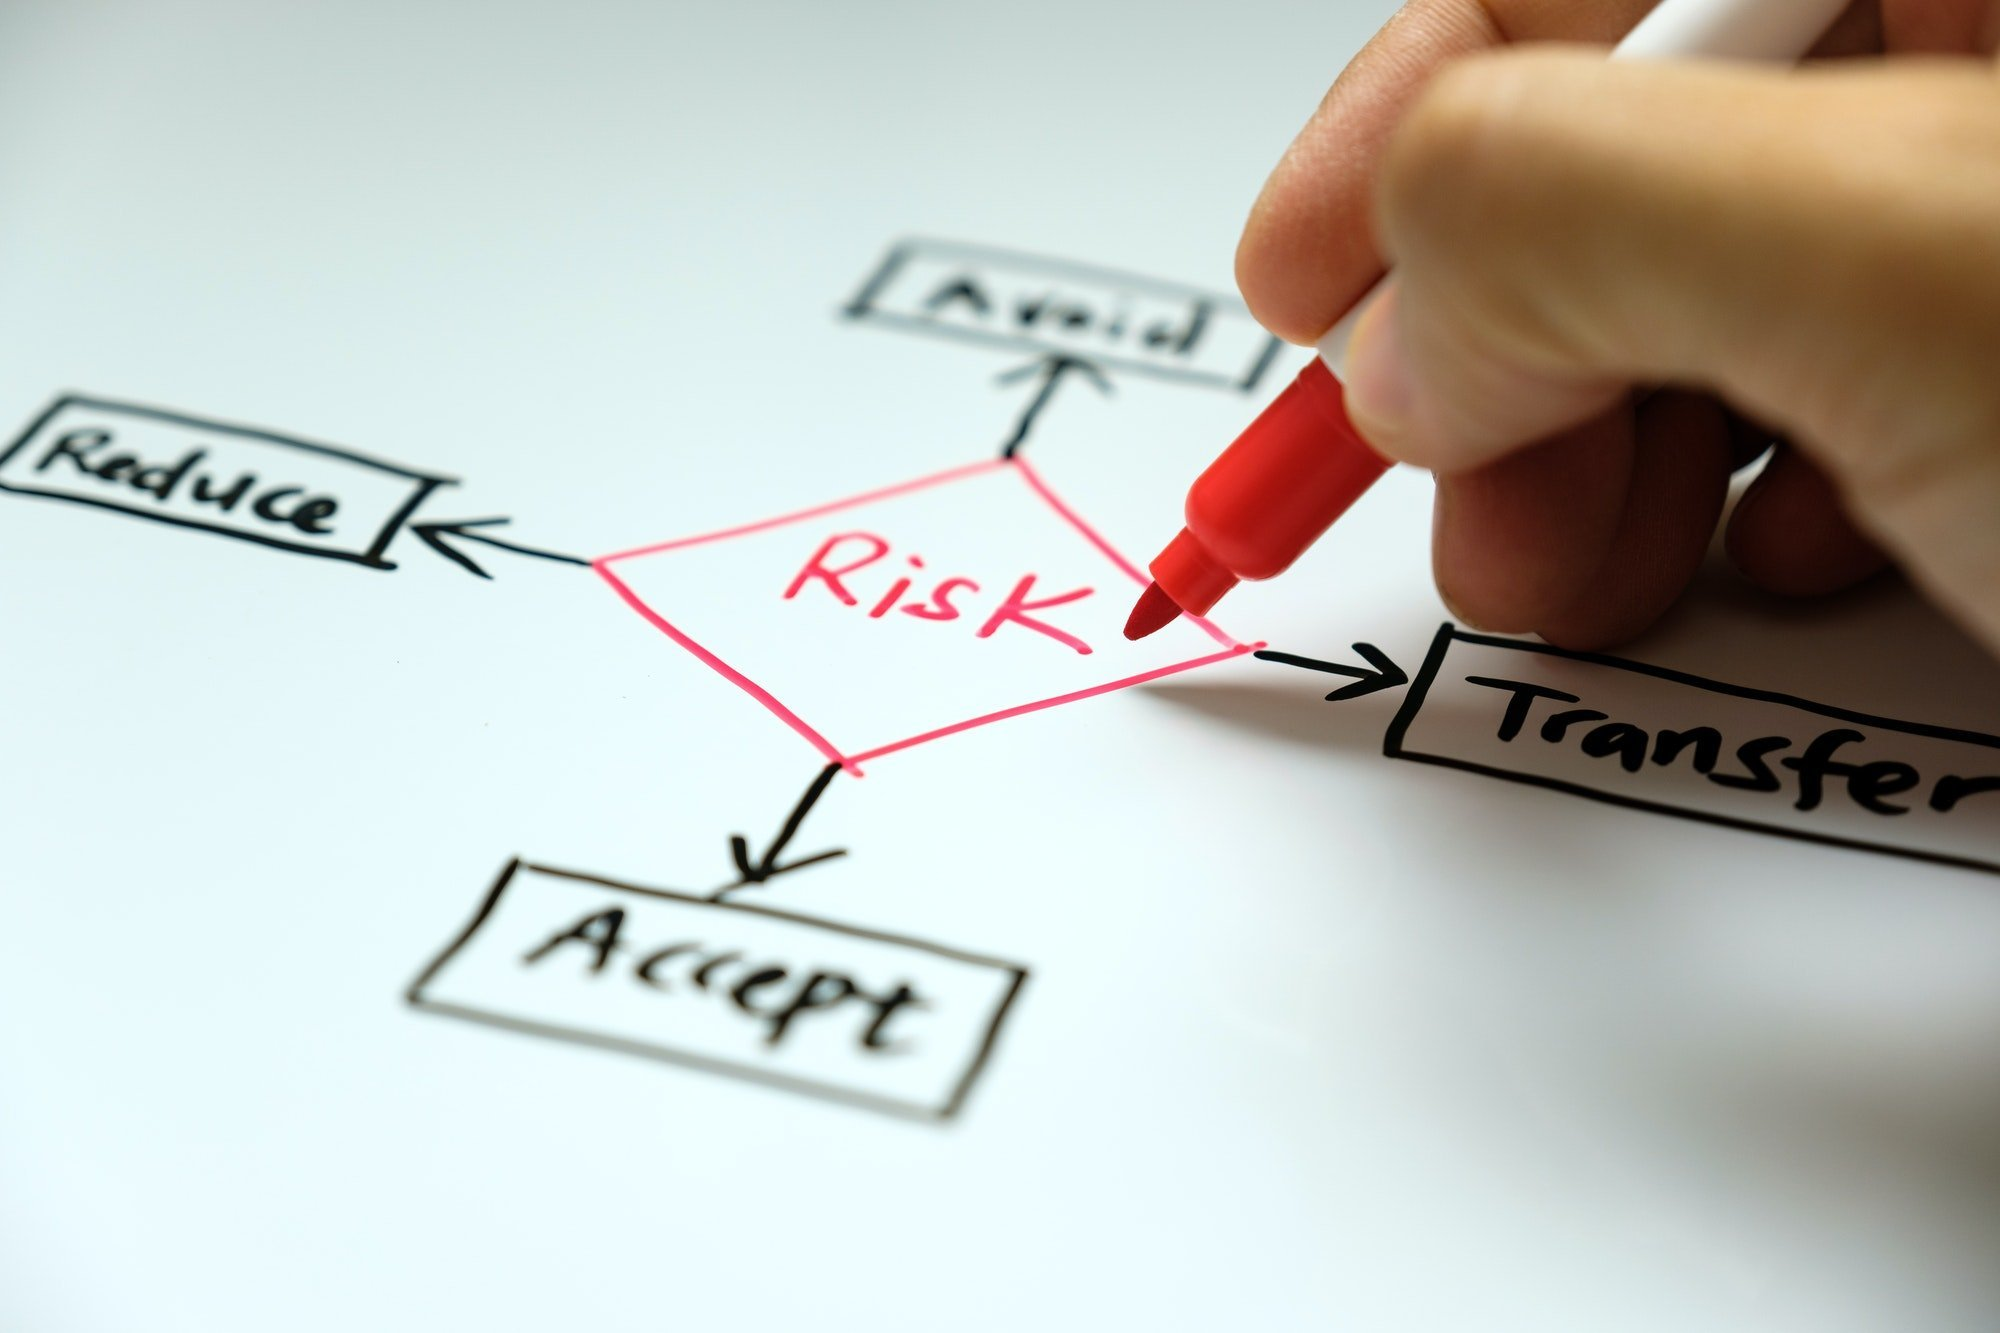 developing risk management plan for small businesses tips